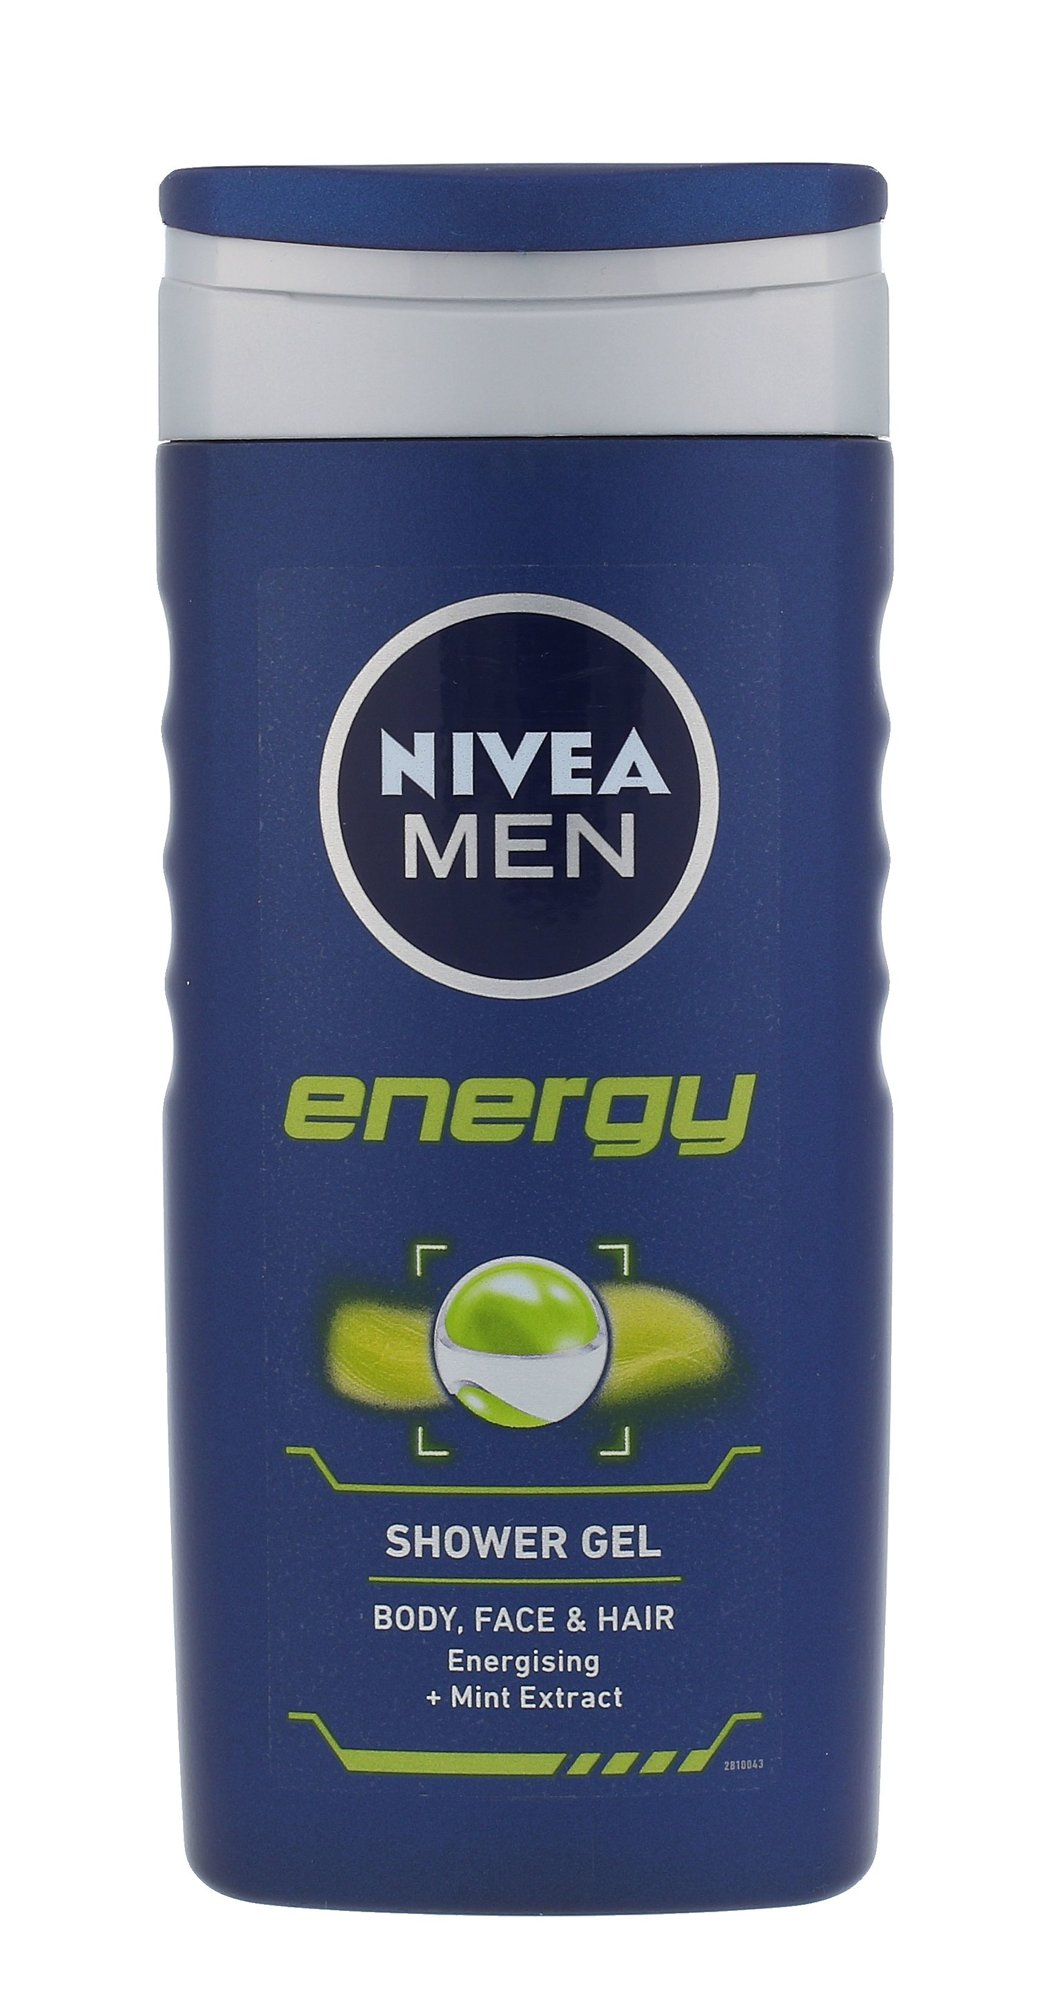 Nivea Men Energy Cosmetic 250ml